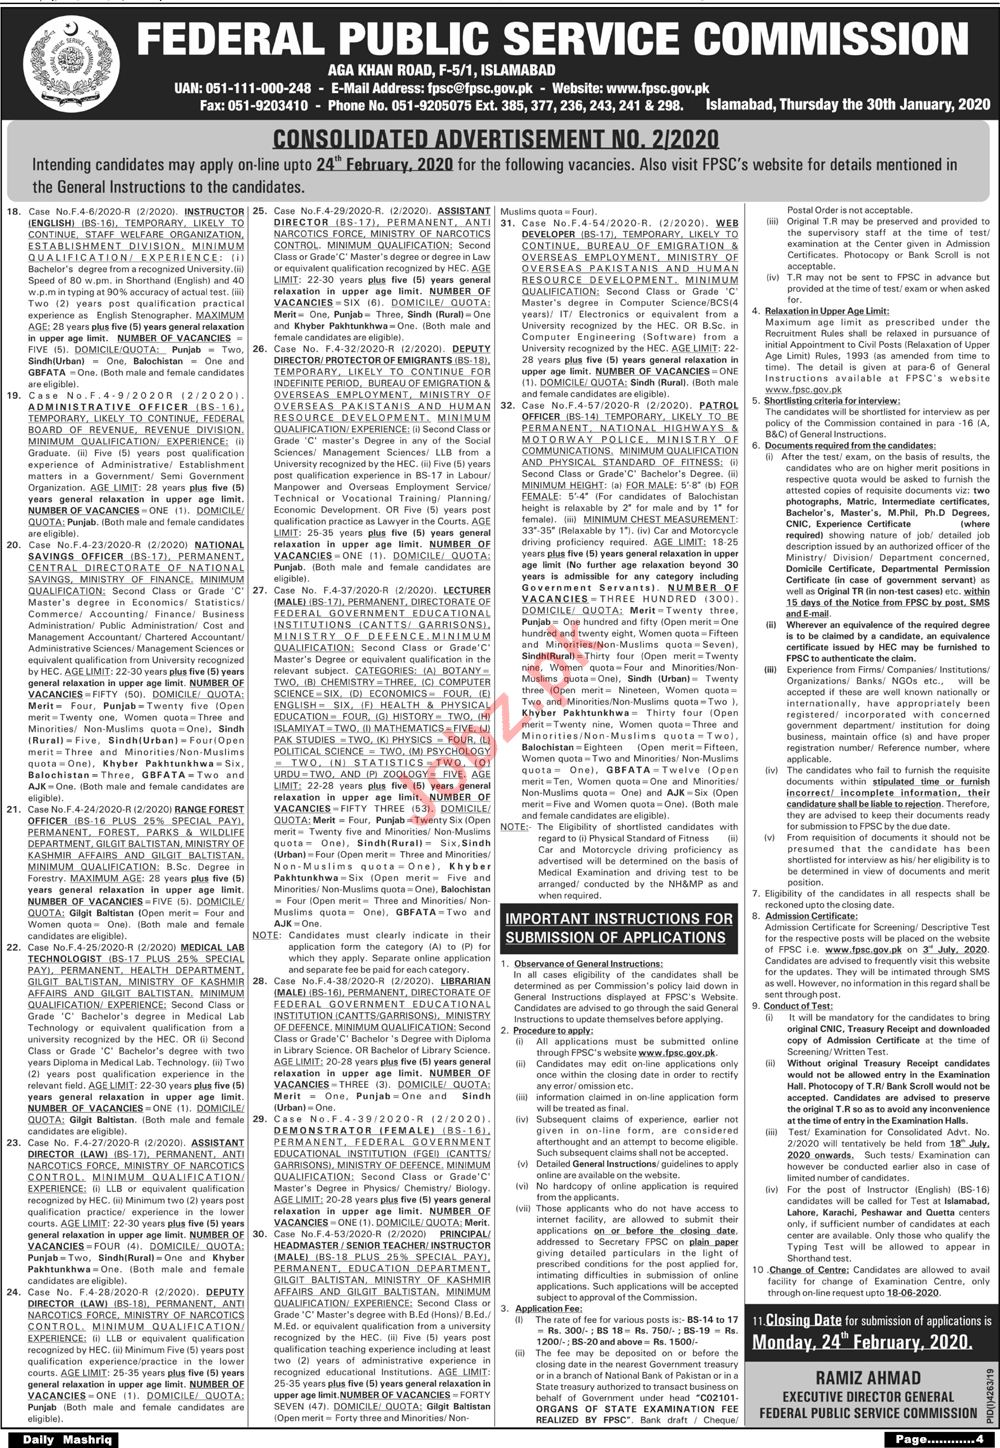 Petrol Officer Ministry of Communication FPSC Jobs 2020